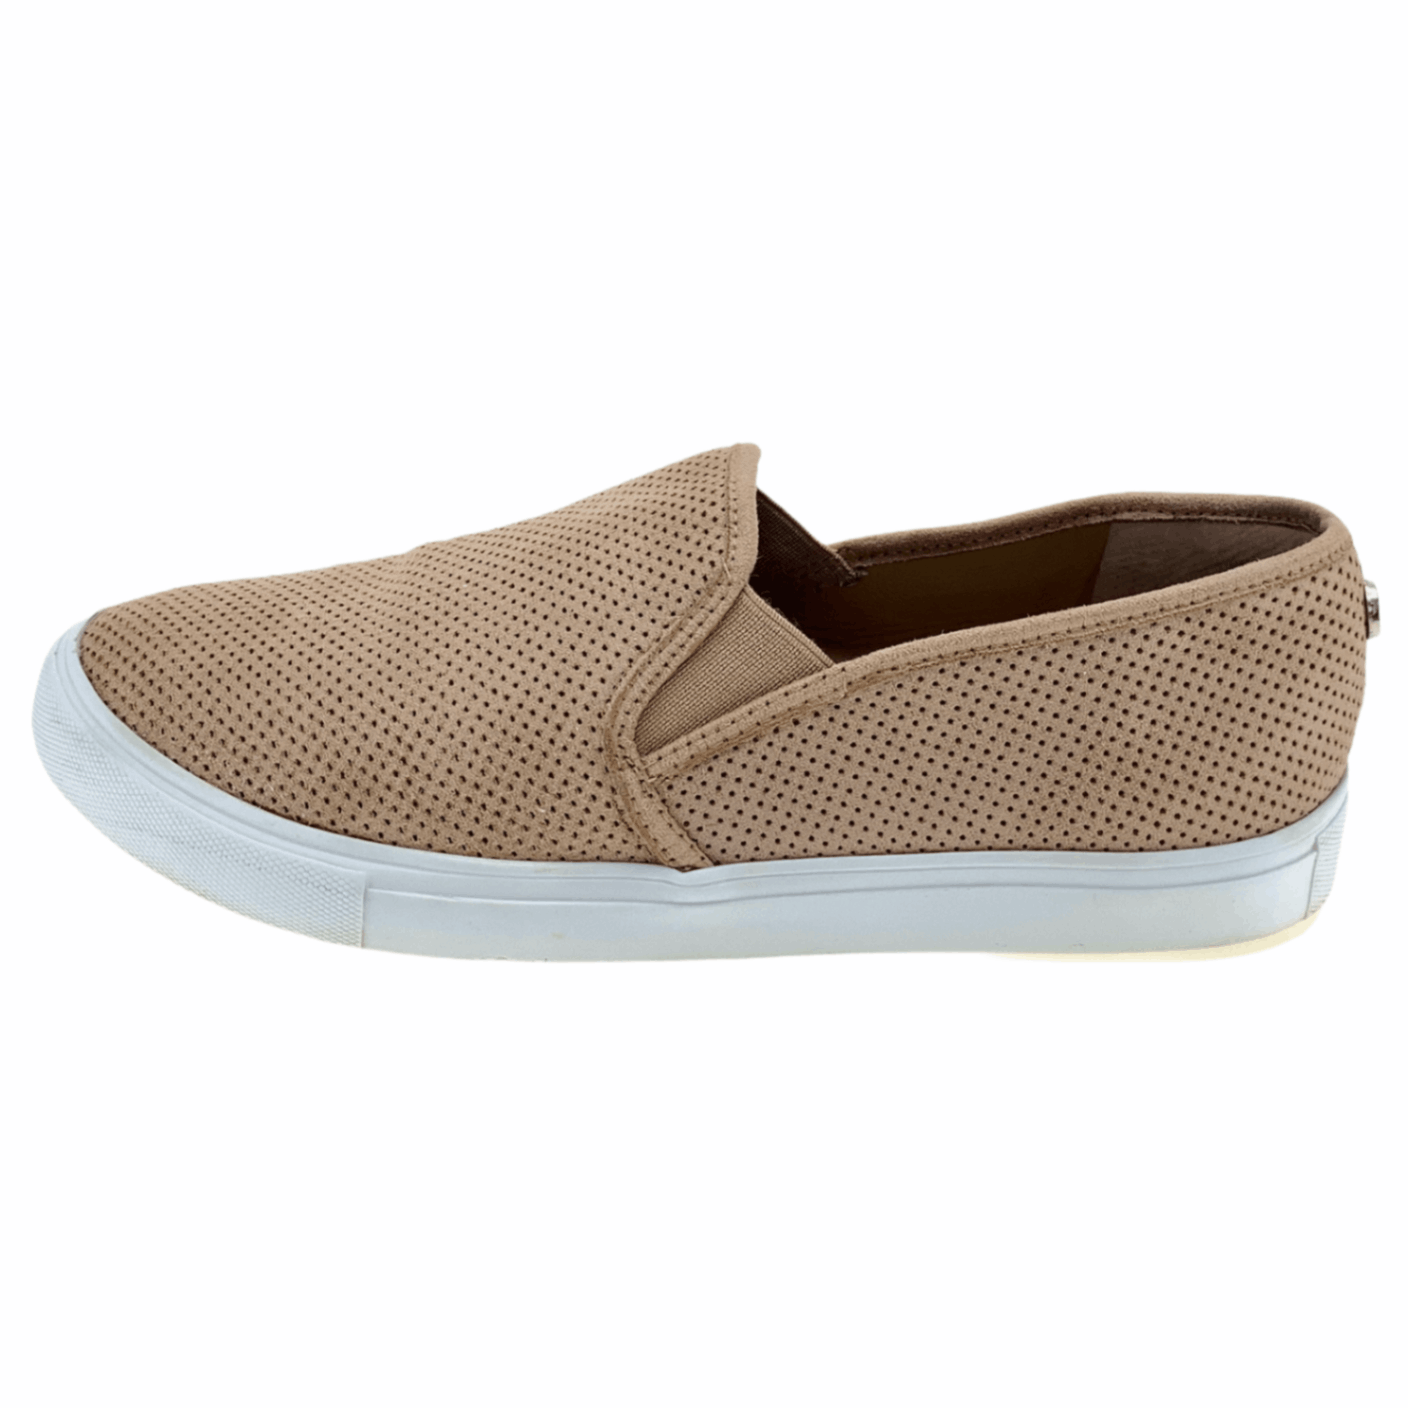 Steve Madden Womens Zarayy Brown Casual Comfort Sneakers Shoes Slip On Size 8 M